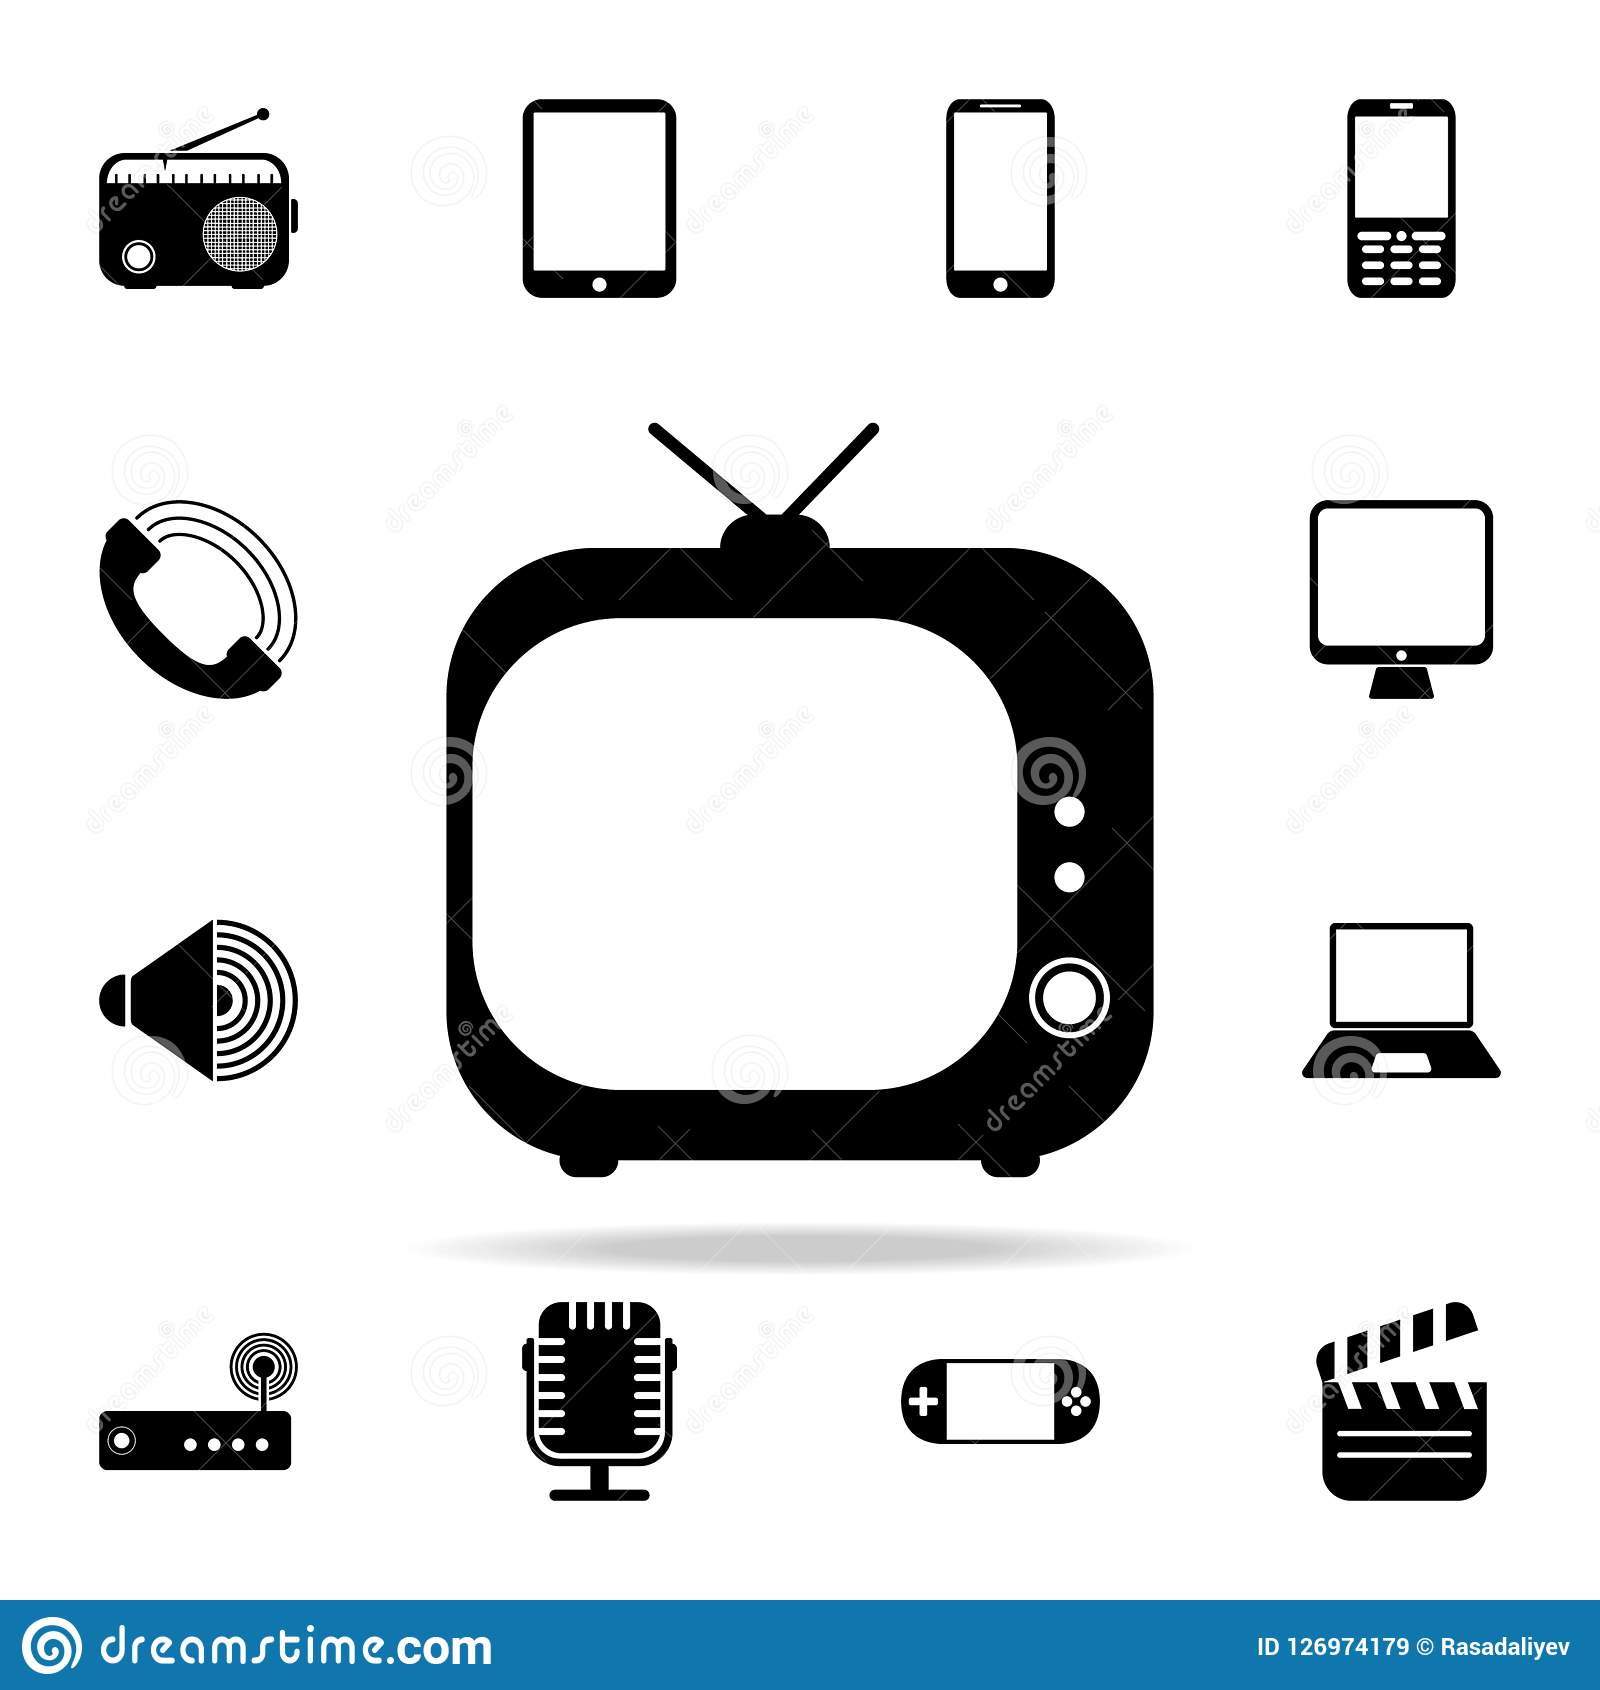 vintage TV icon. Media icons universal set for web and mobile